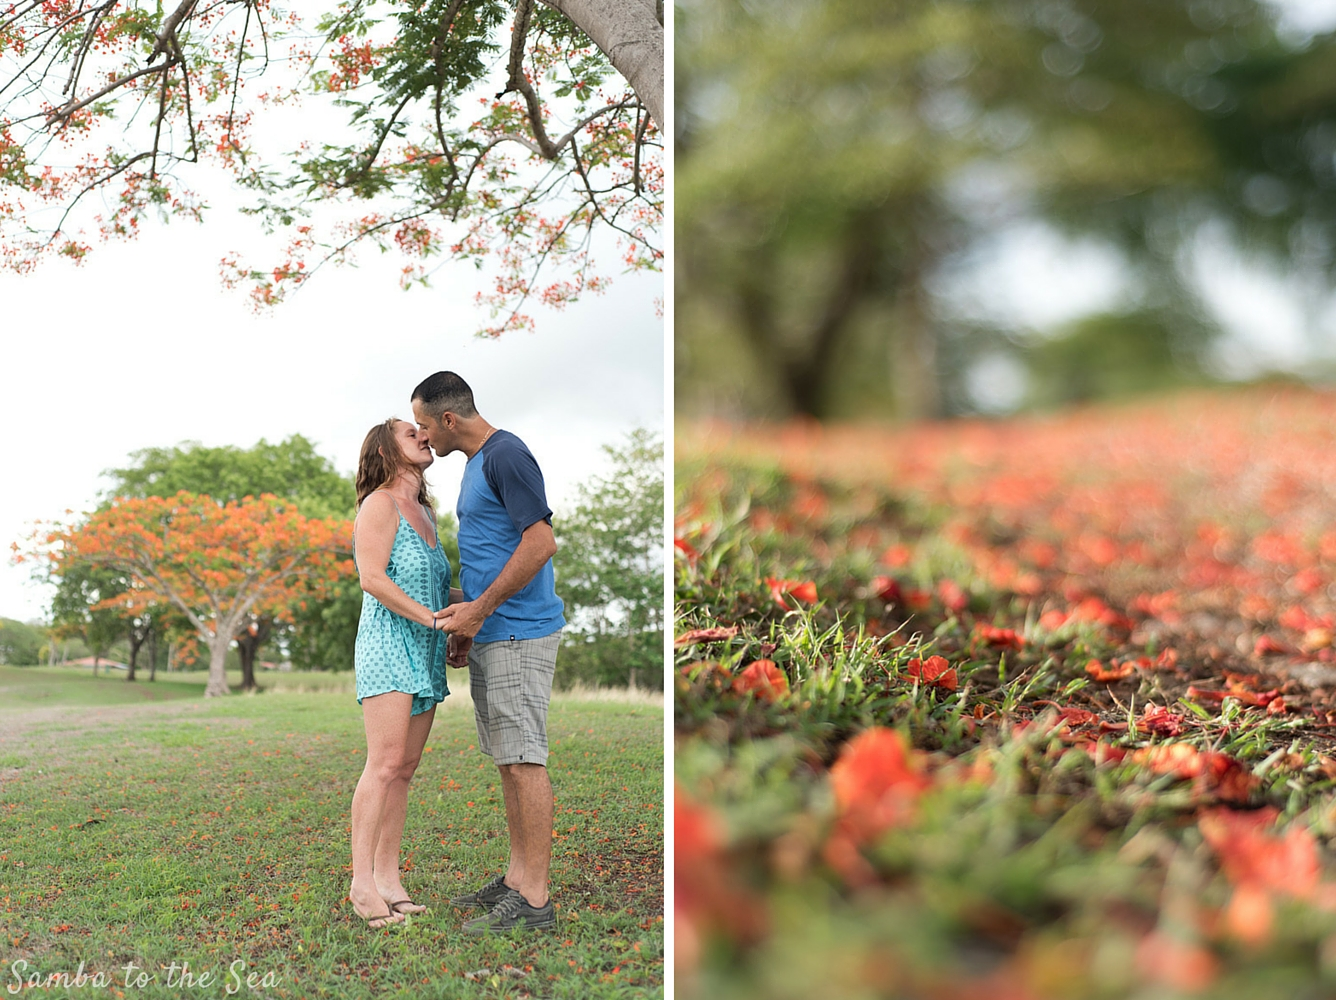 Husband and wife kissing under a Malinche tree in full bloom in Playa Grande, Costa Rica. Photographed by Kristen M. Brown, Samba to the Sea Photography.